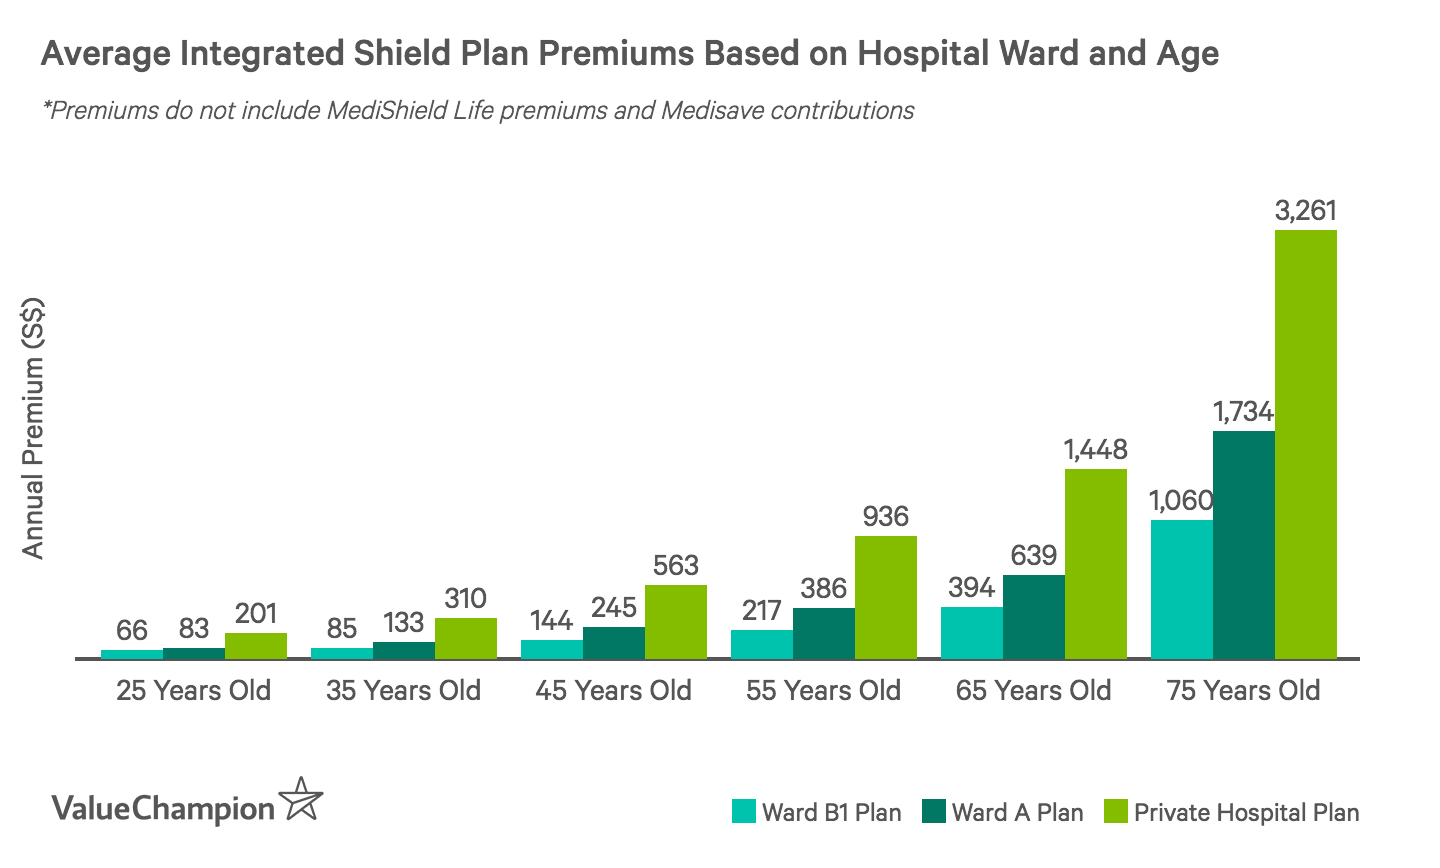 This graph shows Integrated Shield Plan premiums based on age and ward type